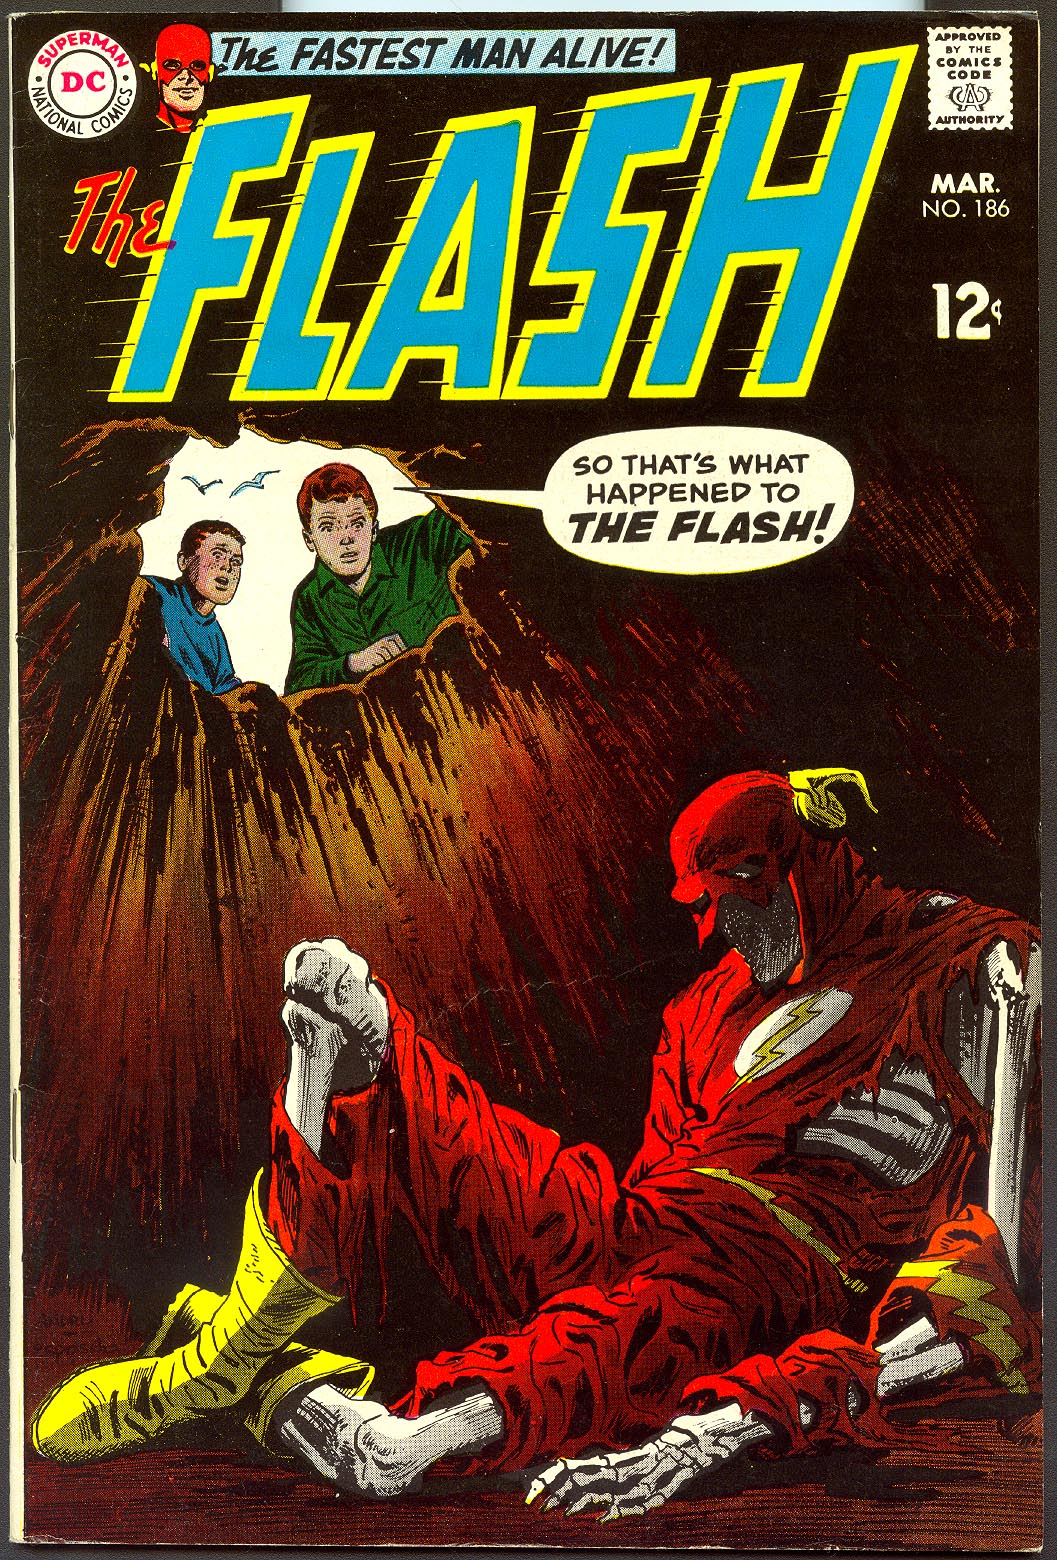 Flash vol 1 - 186 -VFNM